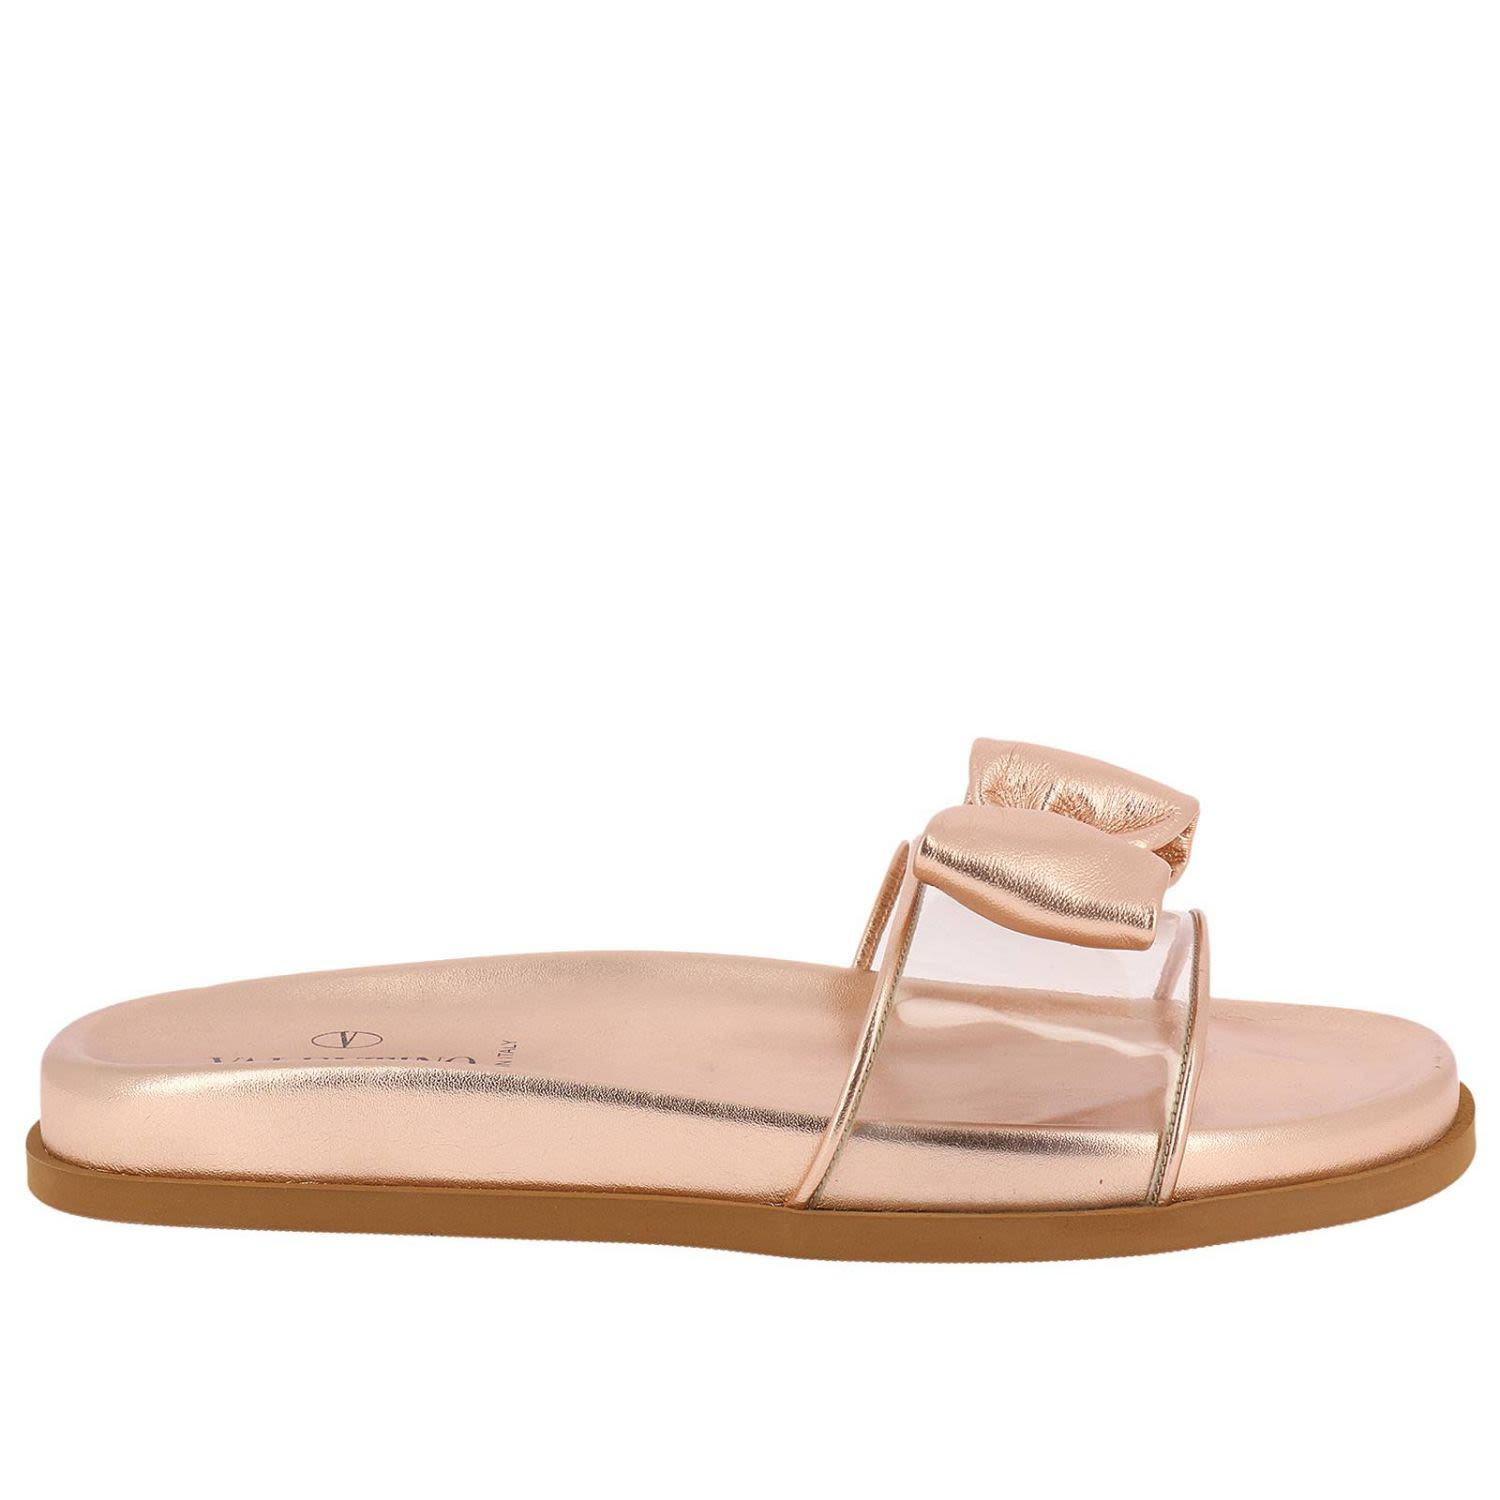 valentino garavani -  Flat Sandals Valentino Slide Sandals Glassglow In Transparent Pvc And Laminated Leather With Maxi Bow